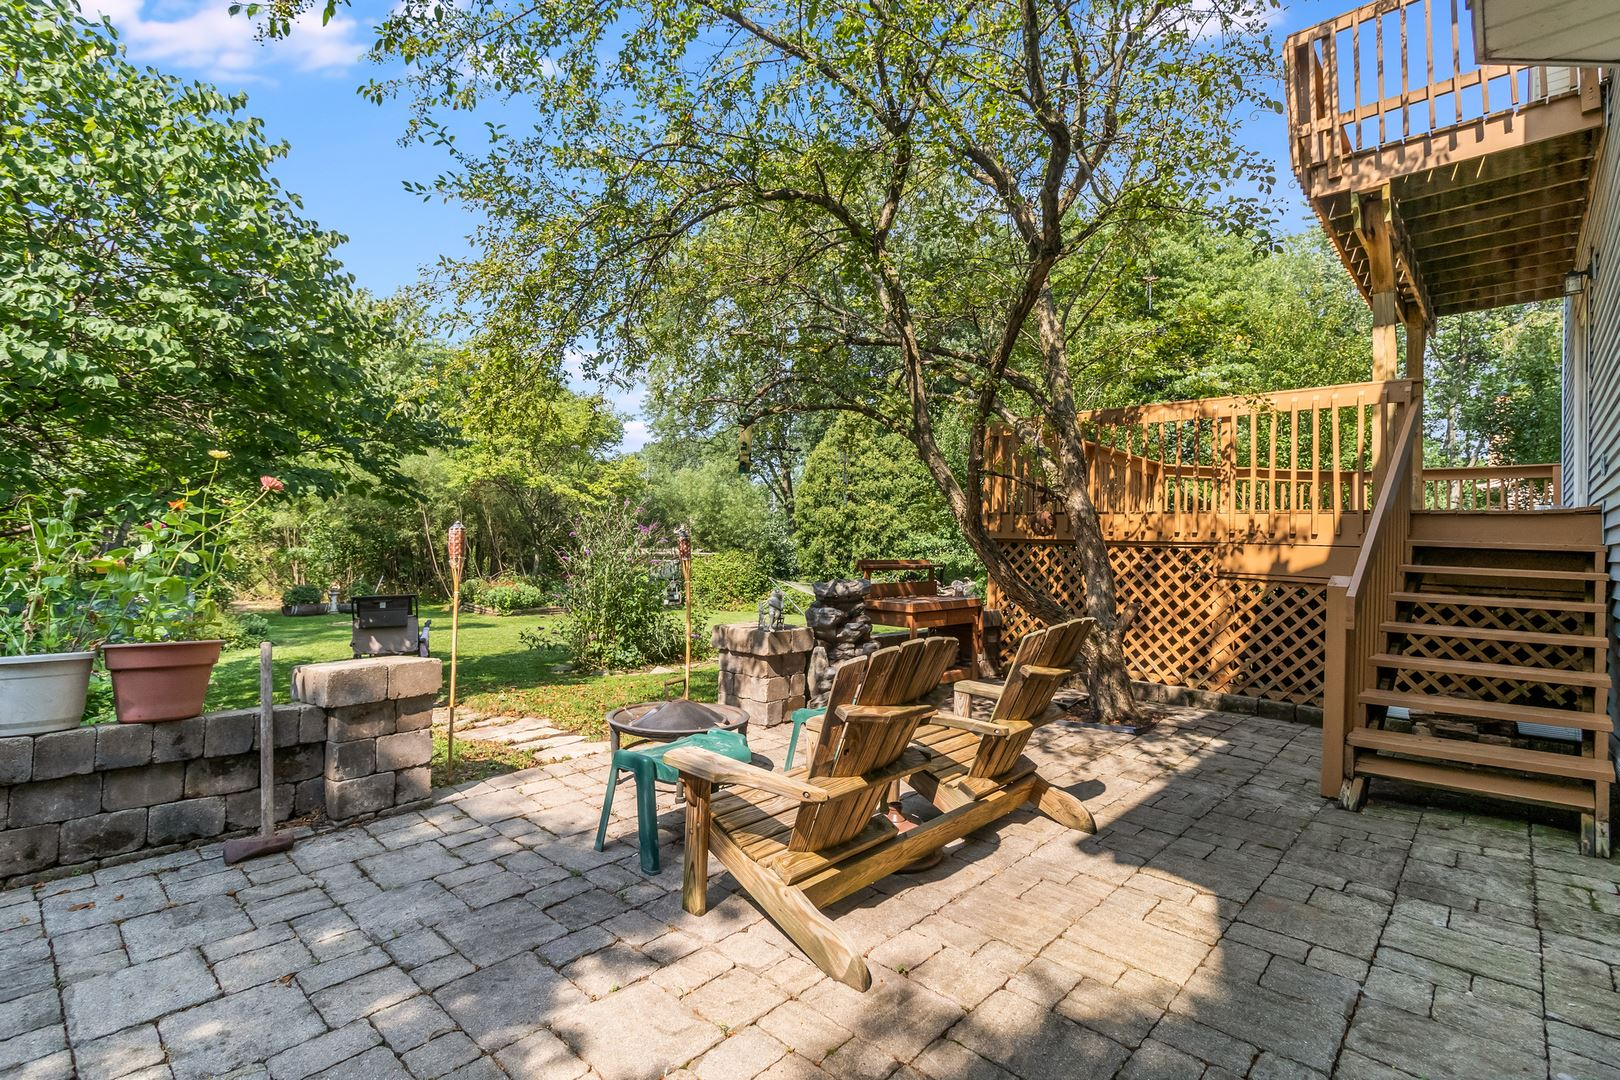 Photo of 1409 Sussex Road, Naperville, IL 60540 (MLS # 11256337)